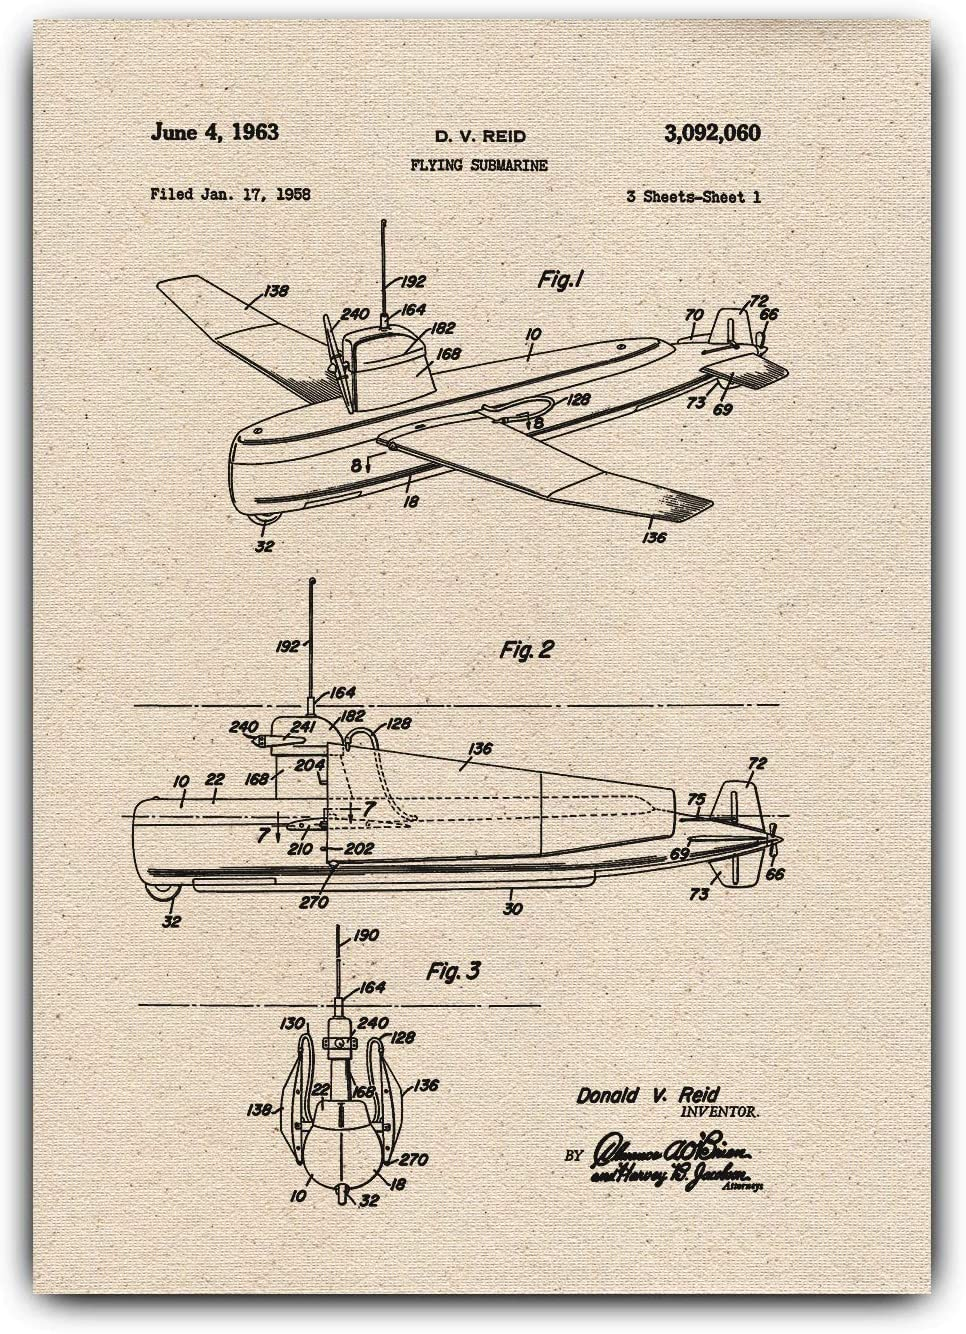 Greta Oto Flying Submarine Drawings Patent, Print on Canvas - Home Office Decor, Wall Hanging Vintage Prints, Flying-submarine-001 (A3-11.7 x 16.5 inch)